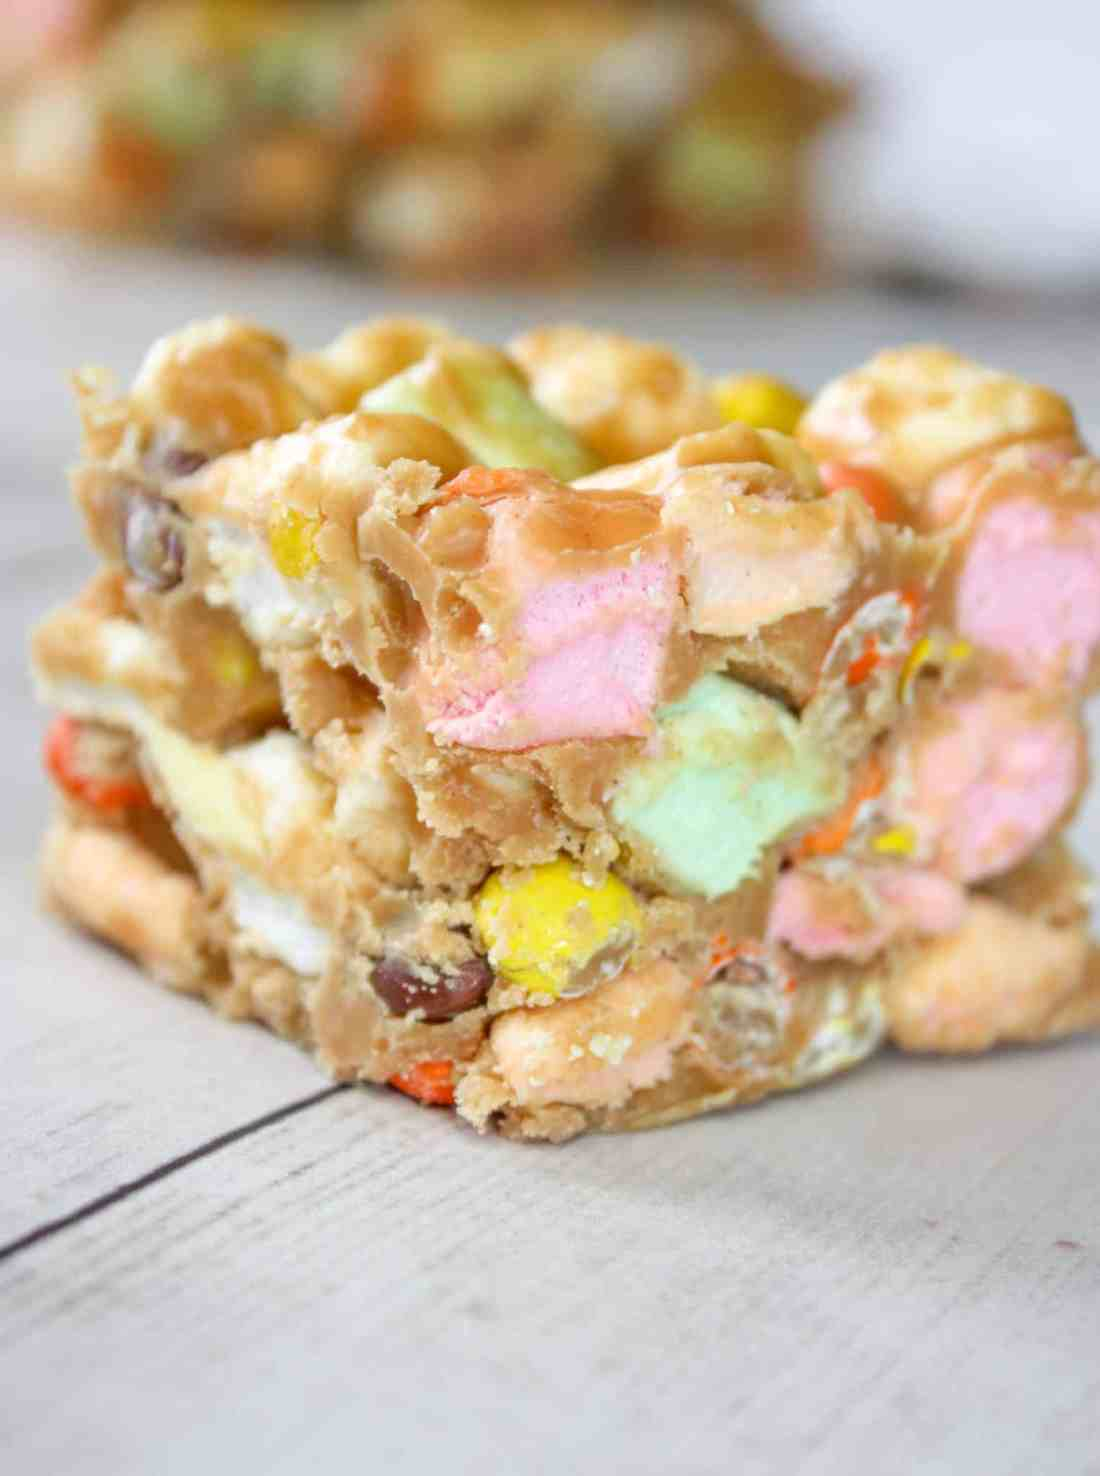 Peanut Butter Marshmallow Squares are a tasty, no bake dessert recipe that is a popular choice for all ages and occasions.